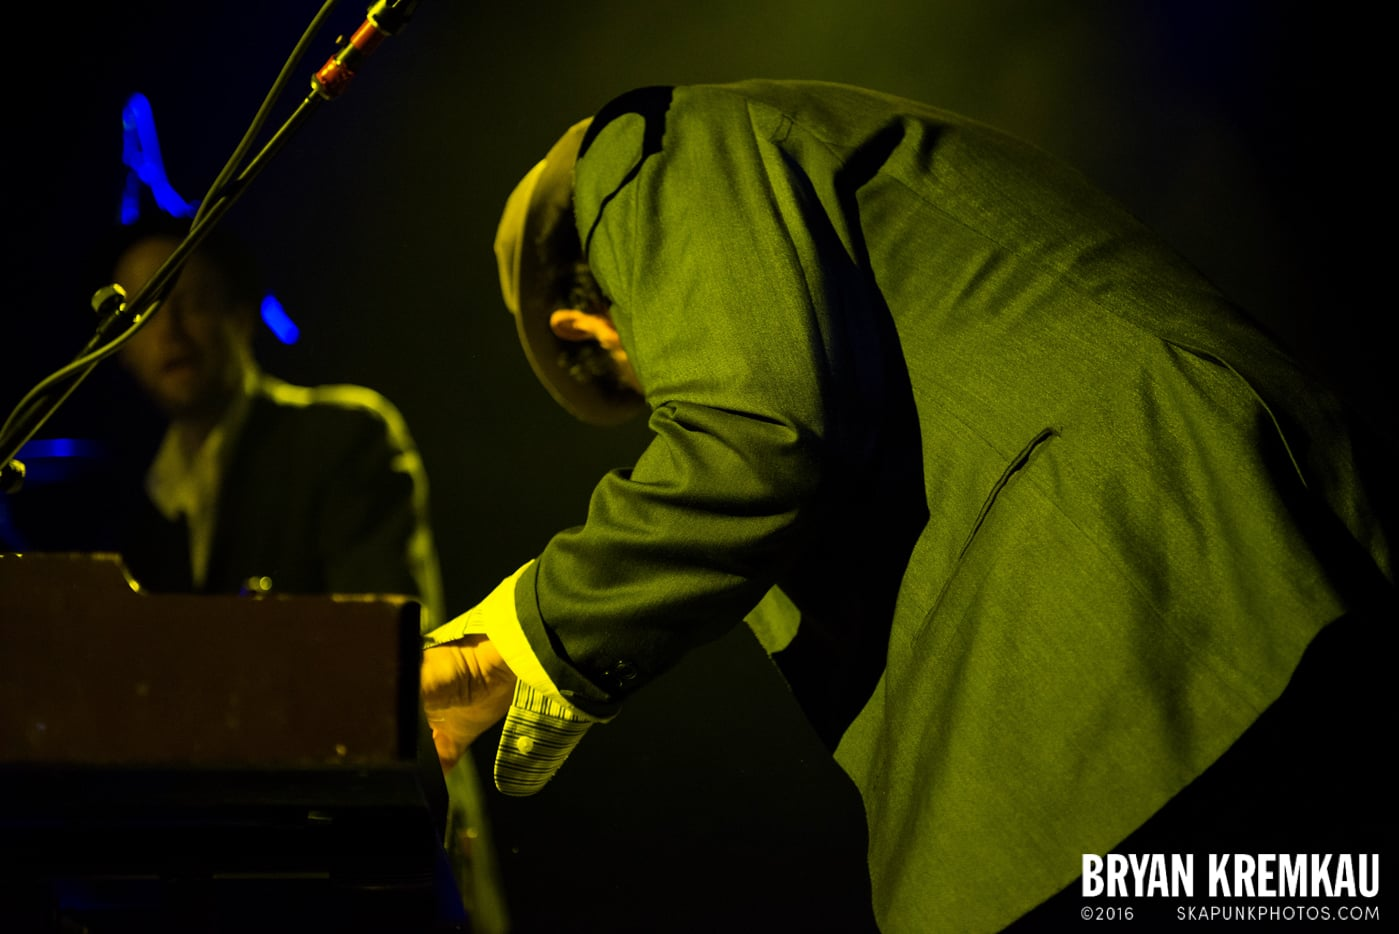 The Slackers @ Apple Stomp: Day 2, Irving Plaza, NYC - June 1st 2013 - Bryan Kremkau (31)